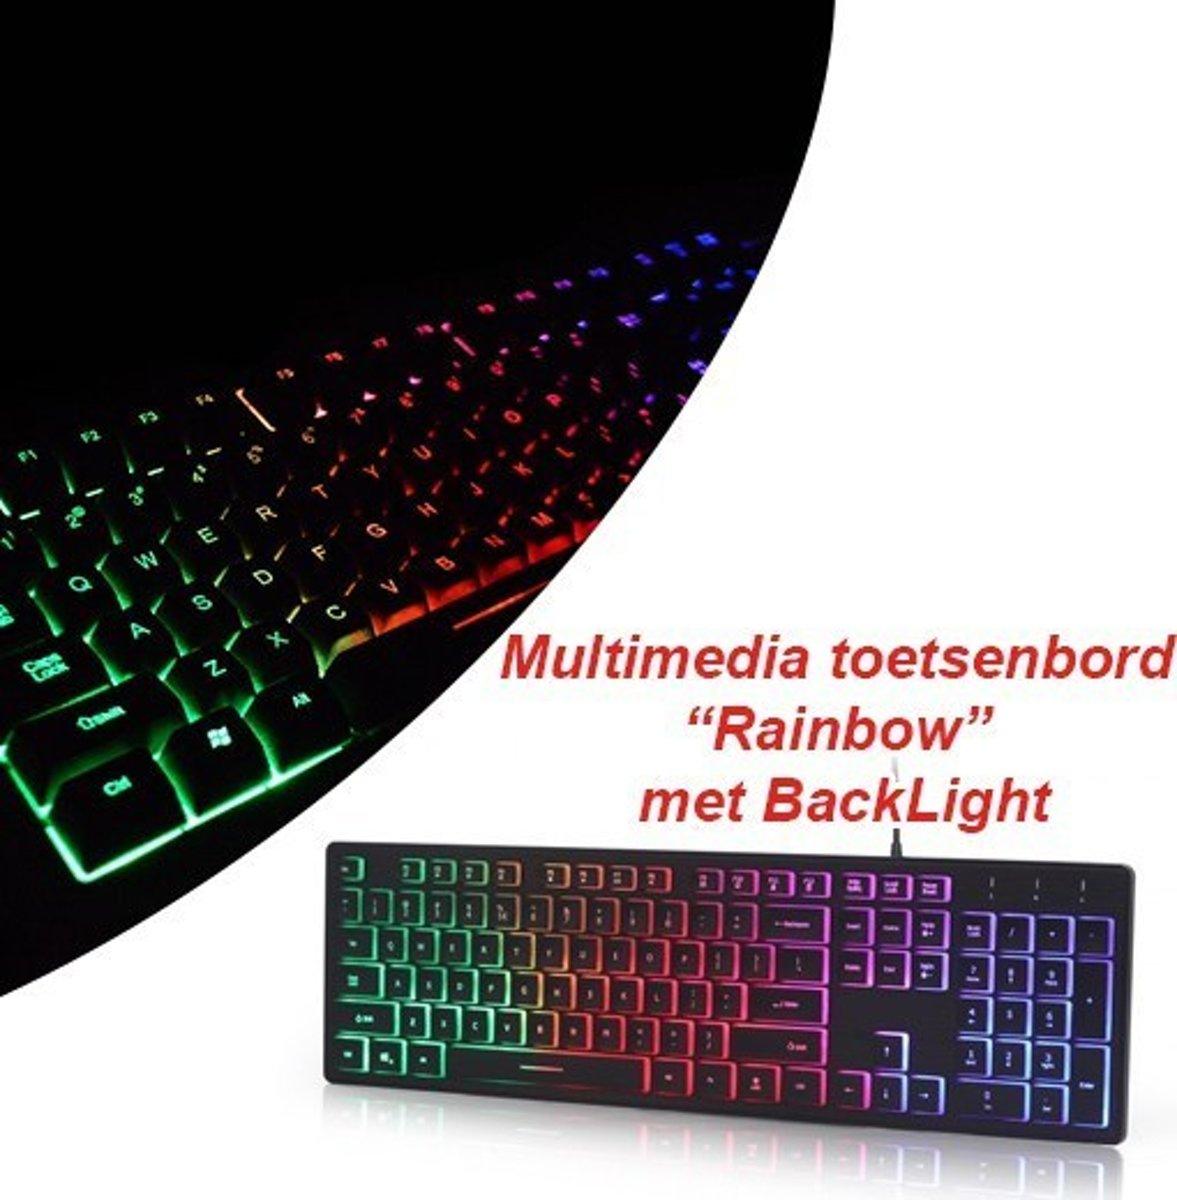 "Multimedia toetsenbord ""Rainbow"" met BackLight"